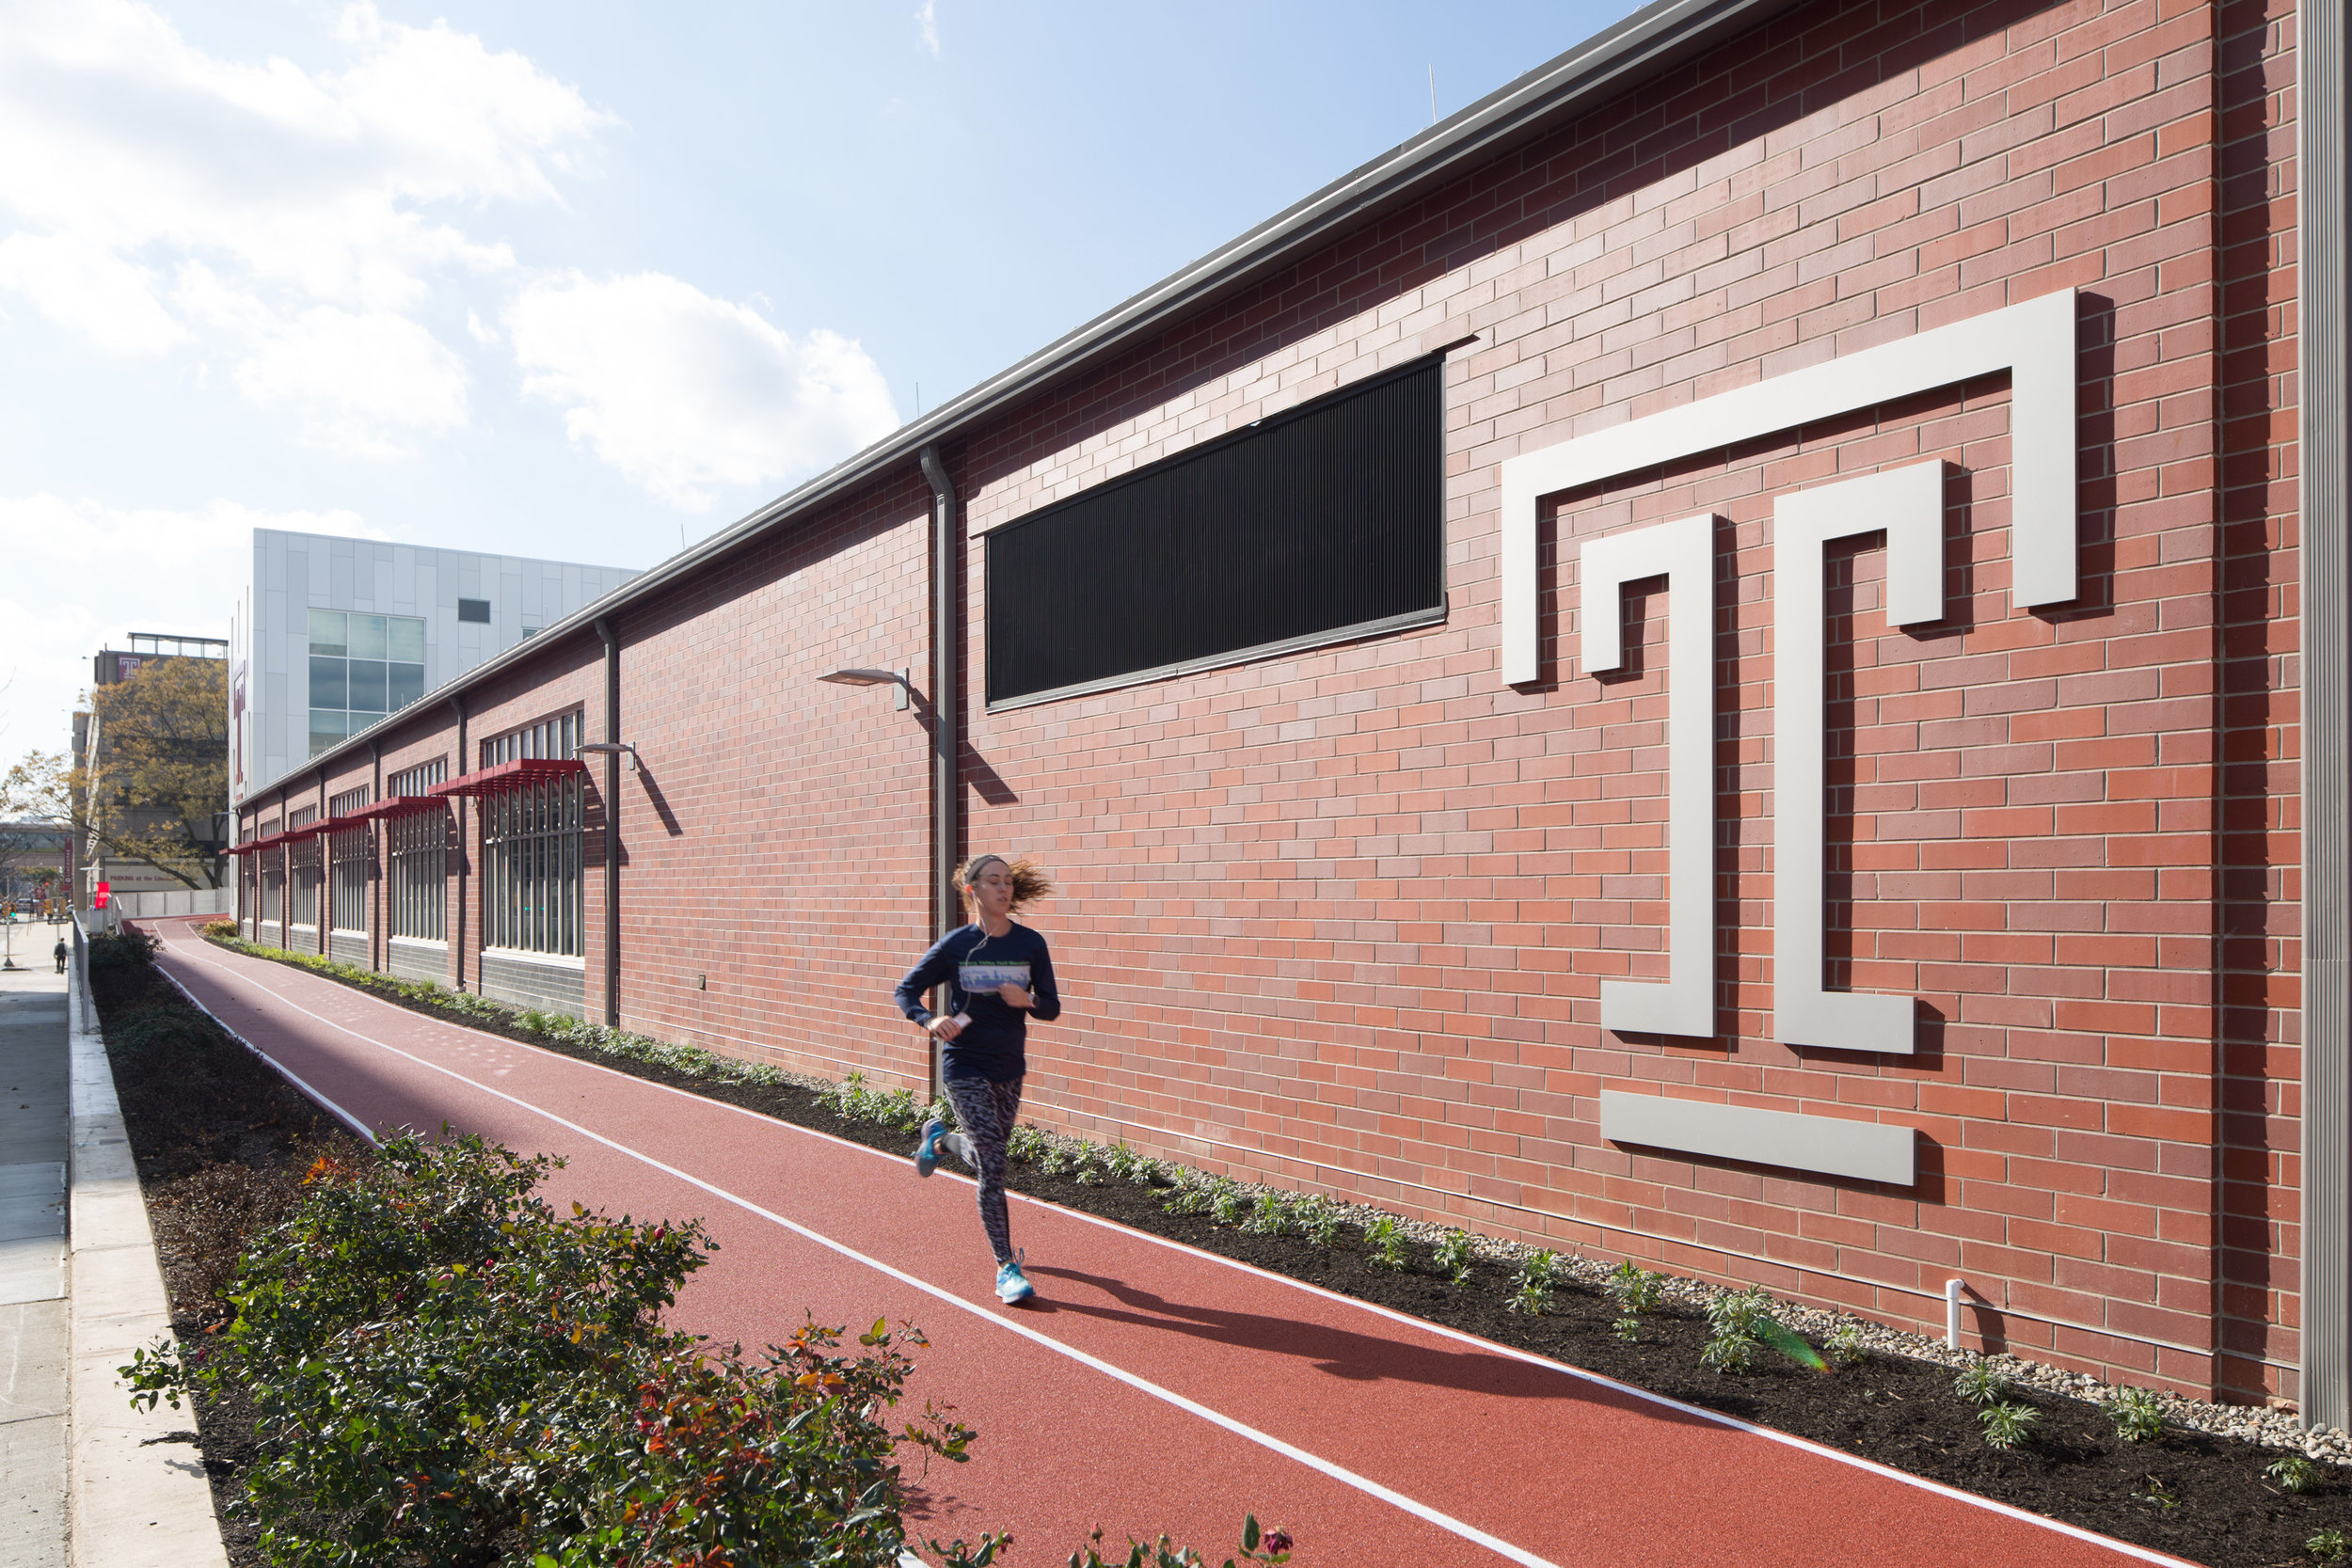 A new 400-meter, 2-lane track encircles the facility.